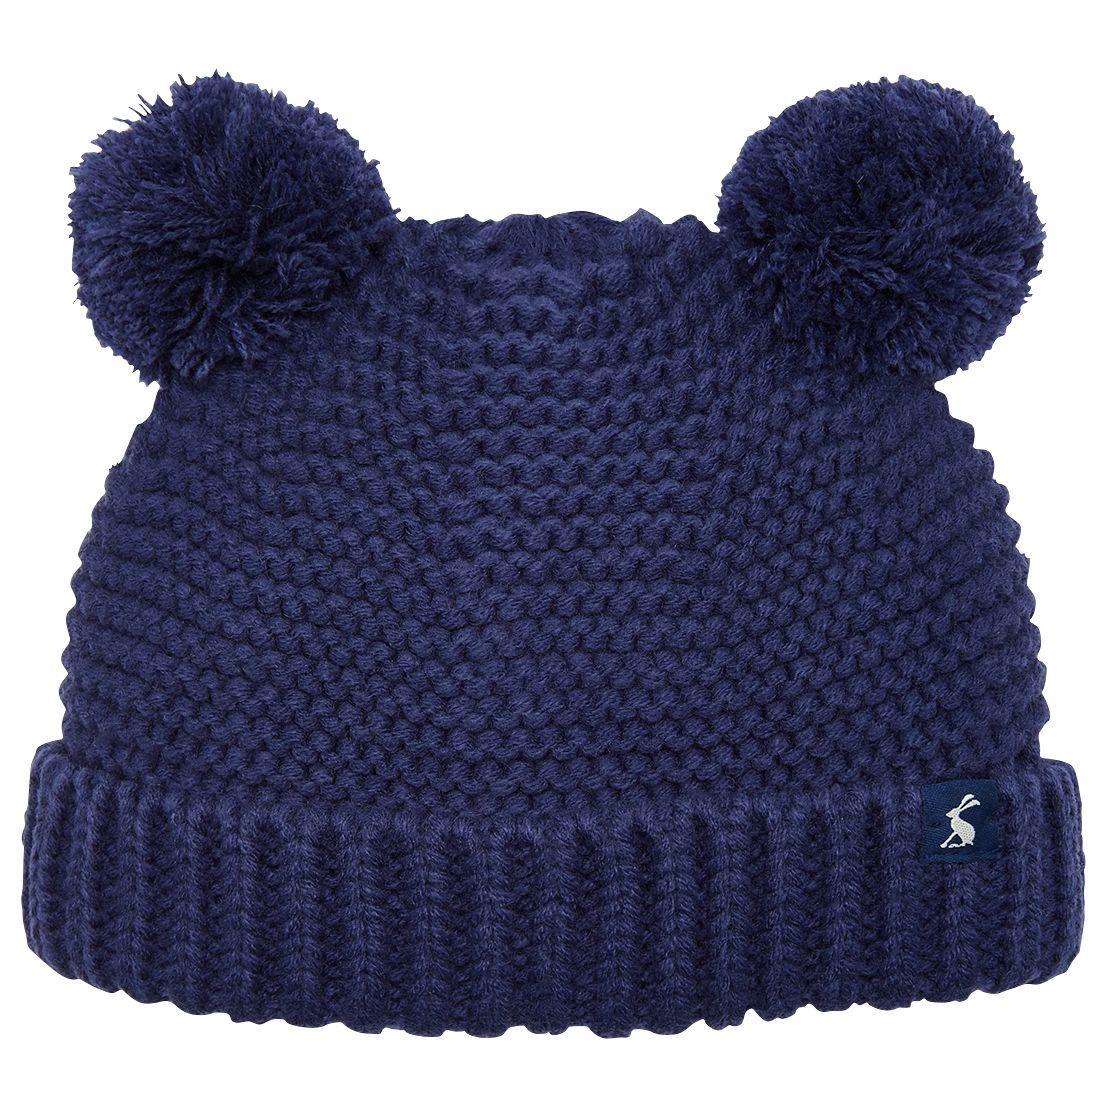 a292a9bb663337 Baby Joule Pom Pom Knit Hat at John Lewis & Partners